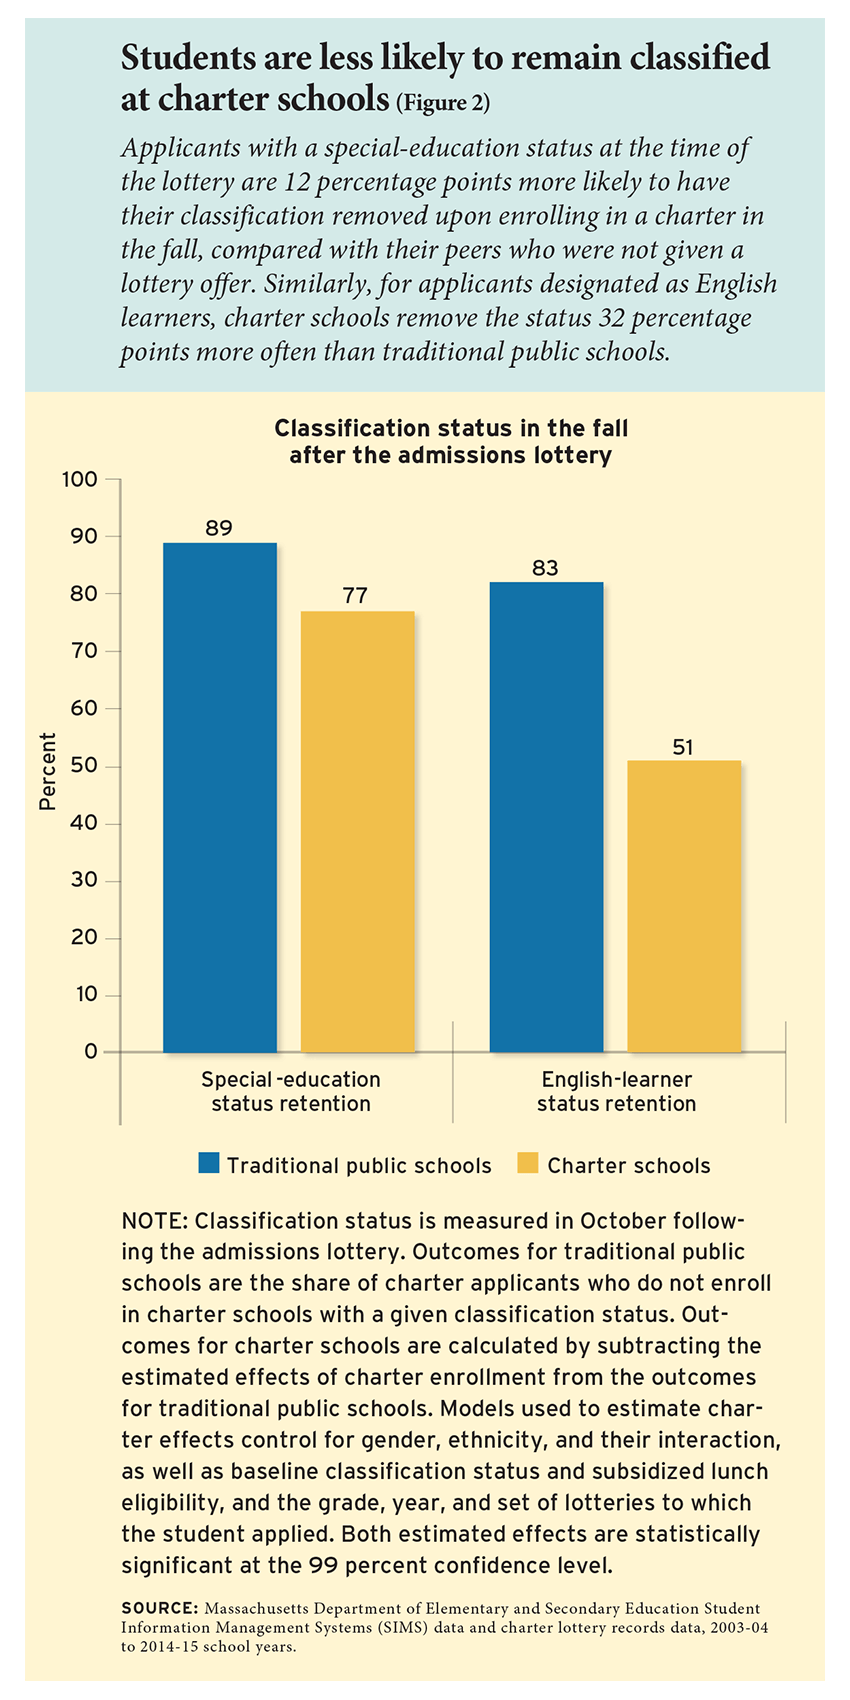 Students are less likely to remain classified at charter schools (Figure 2)